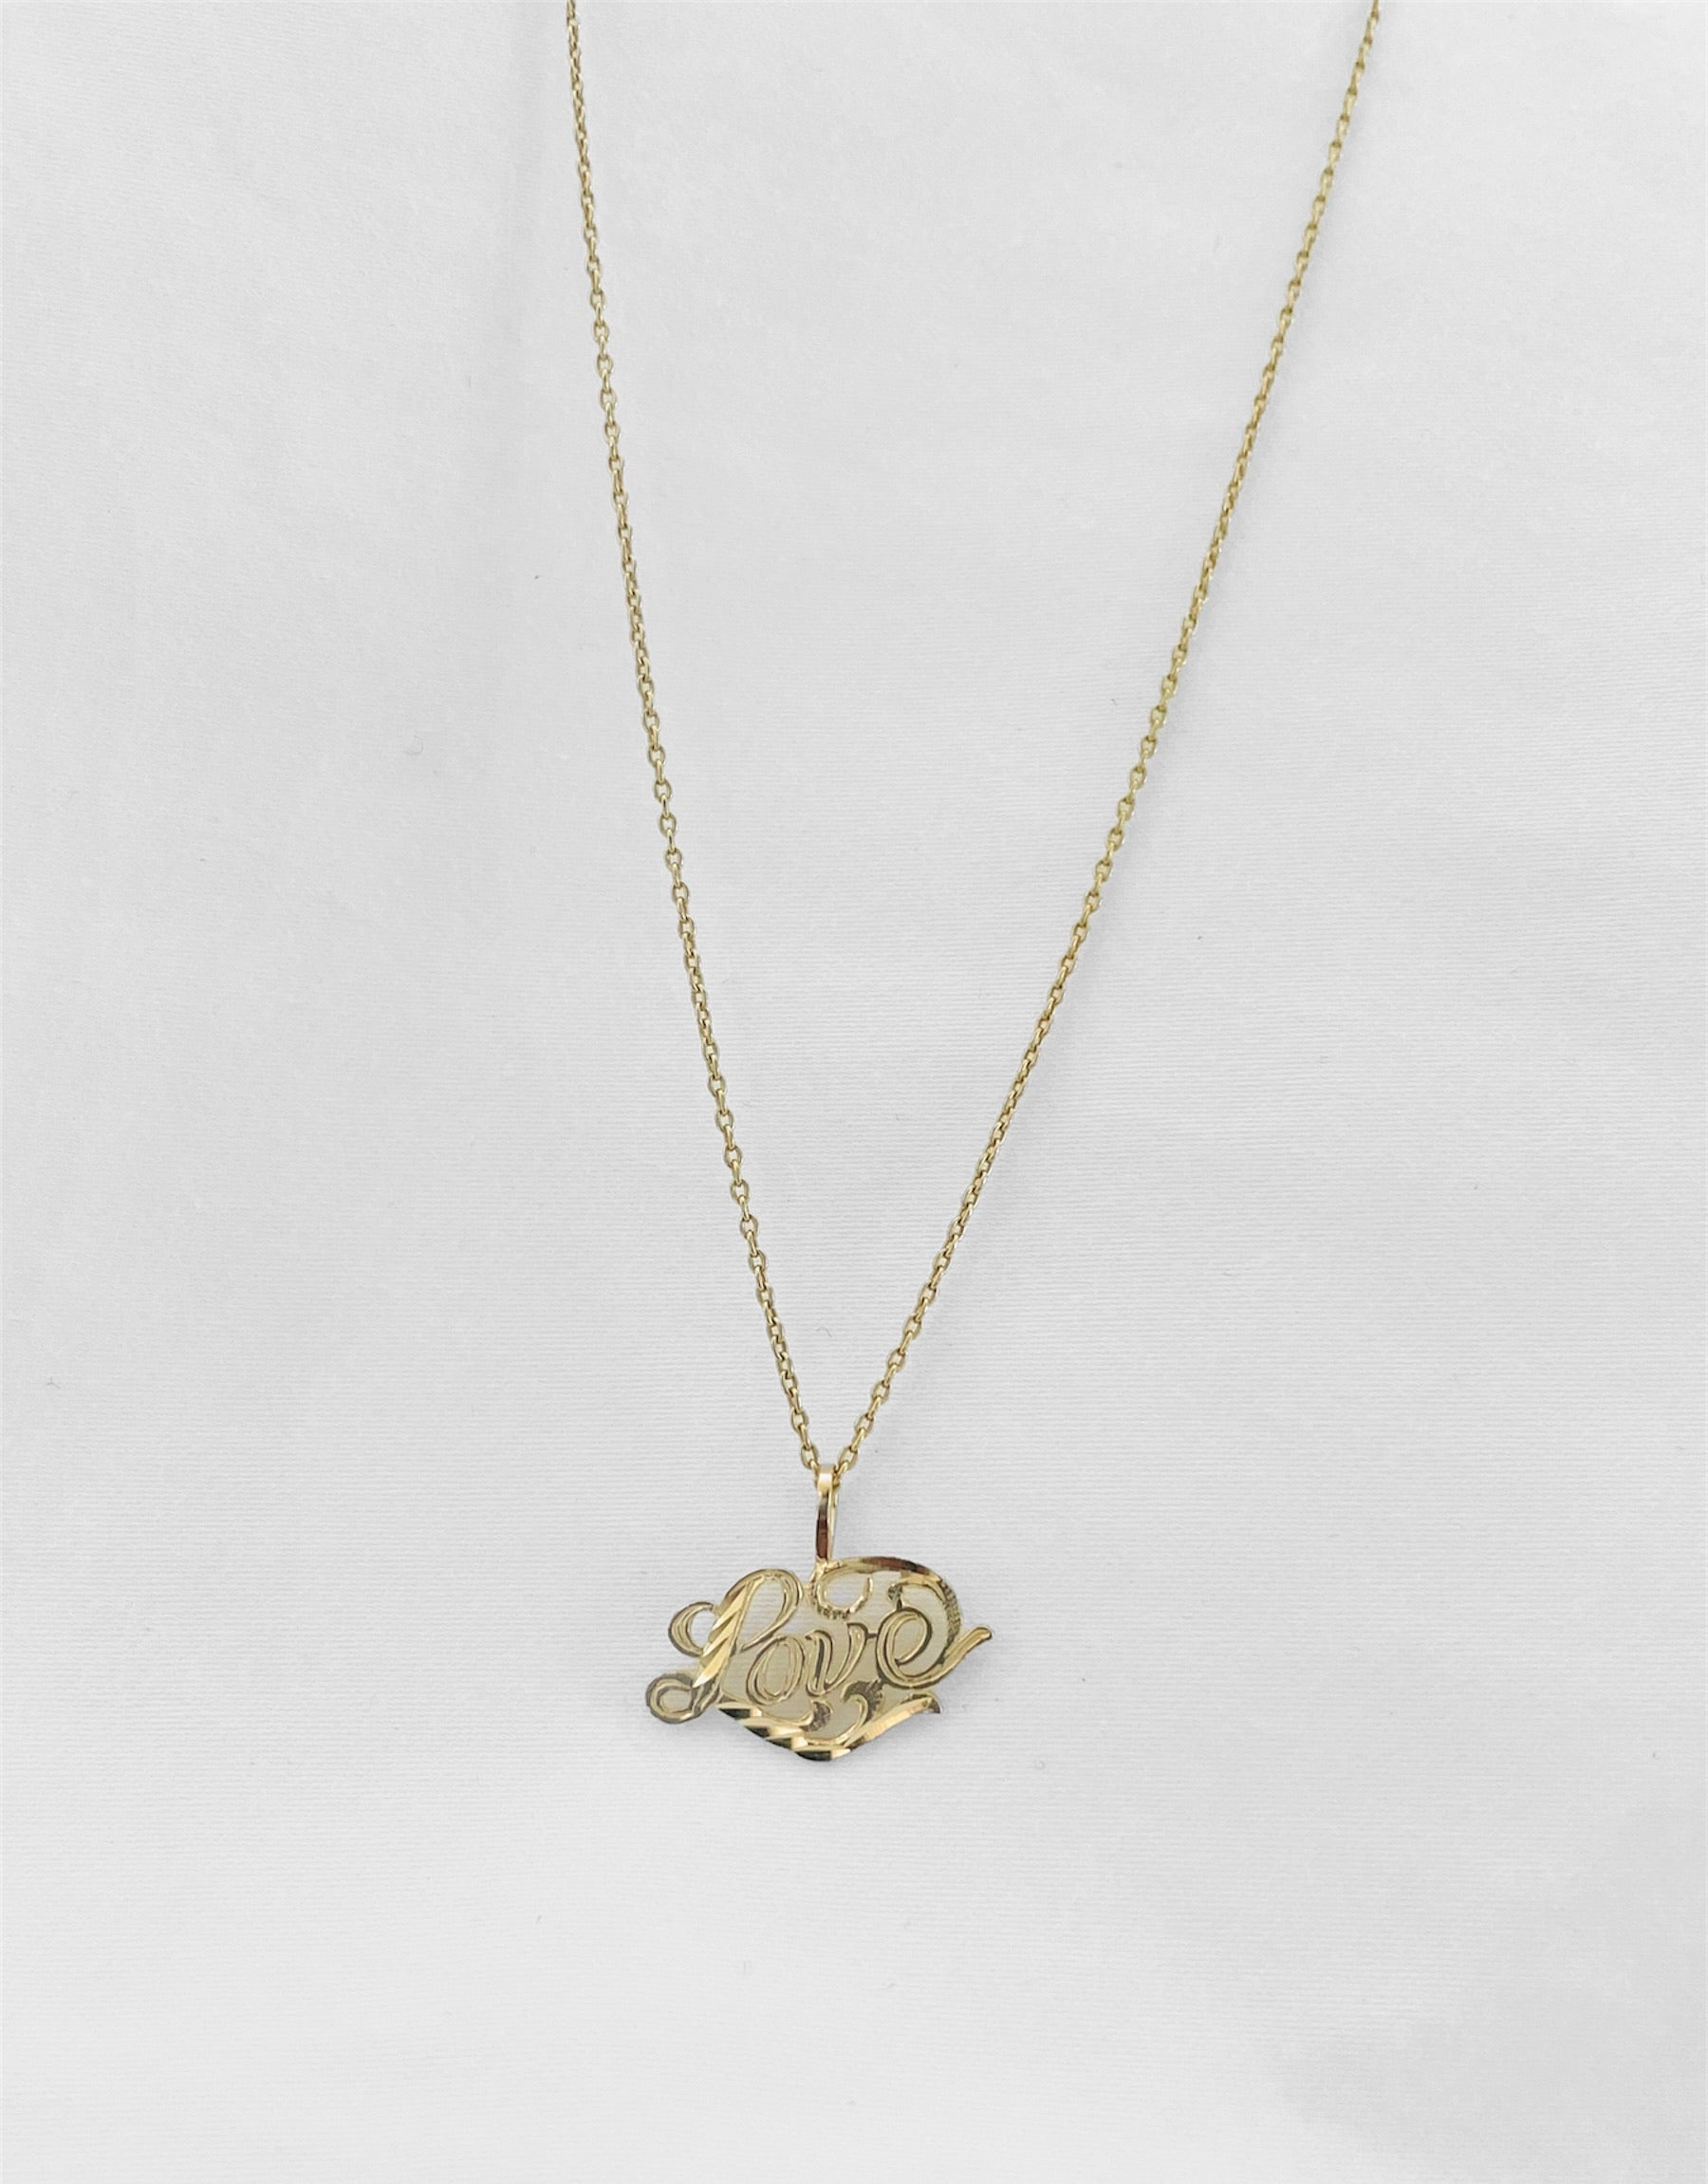 14Kt Golden Love Charm Necklace